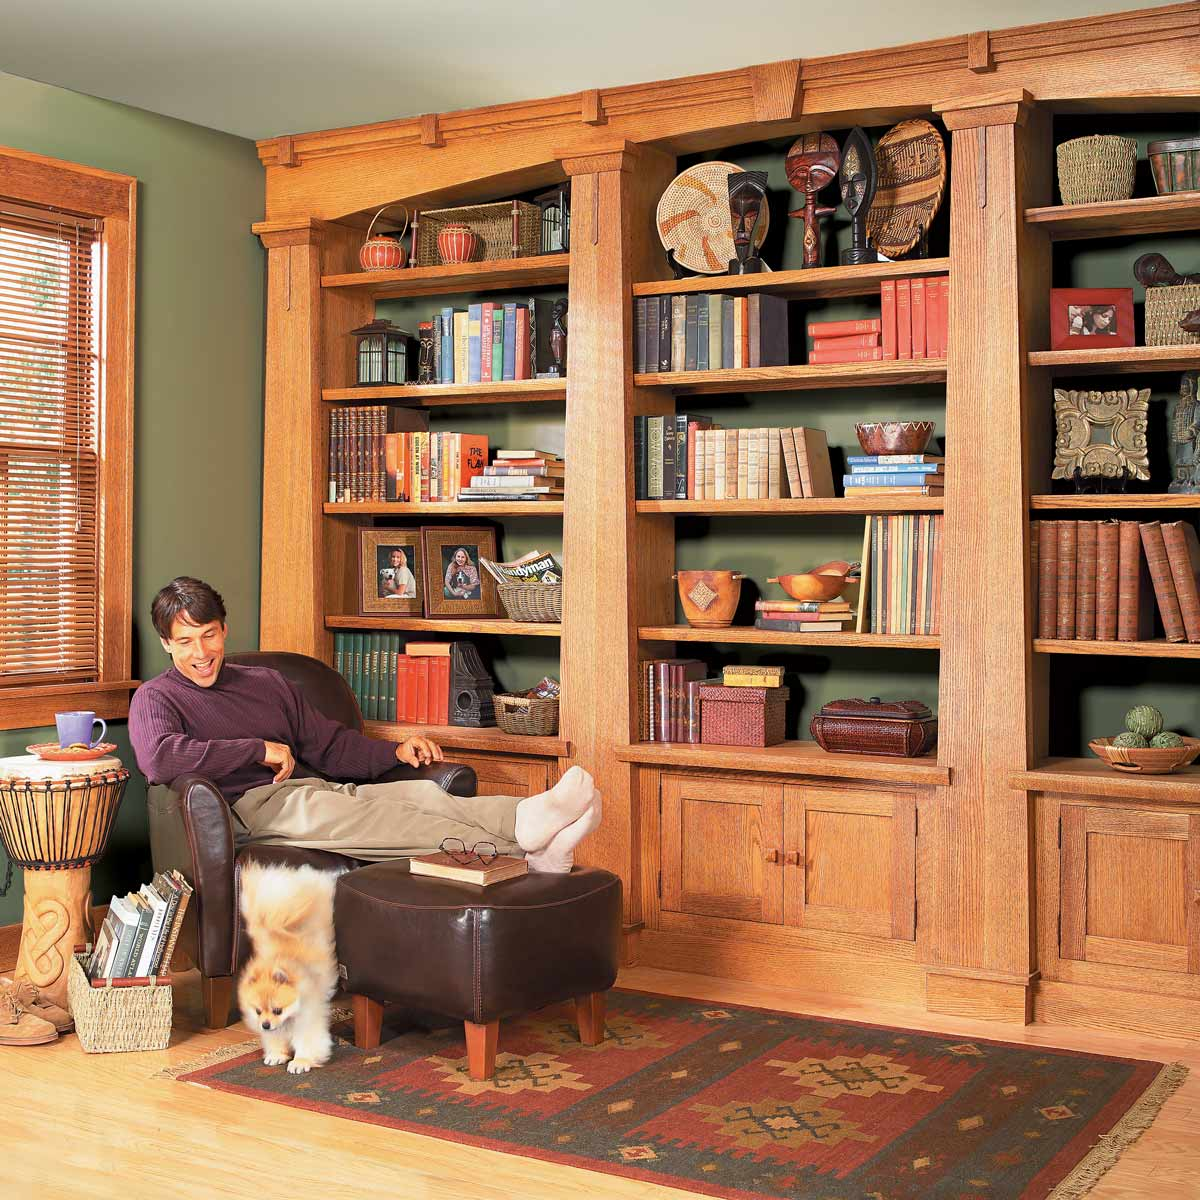 The Family Handyman Craftsman-Style Bookcase